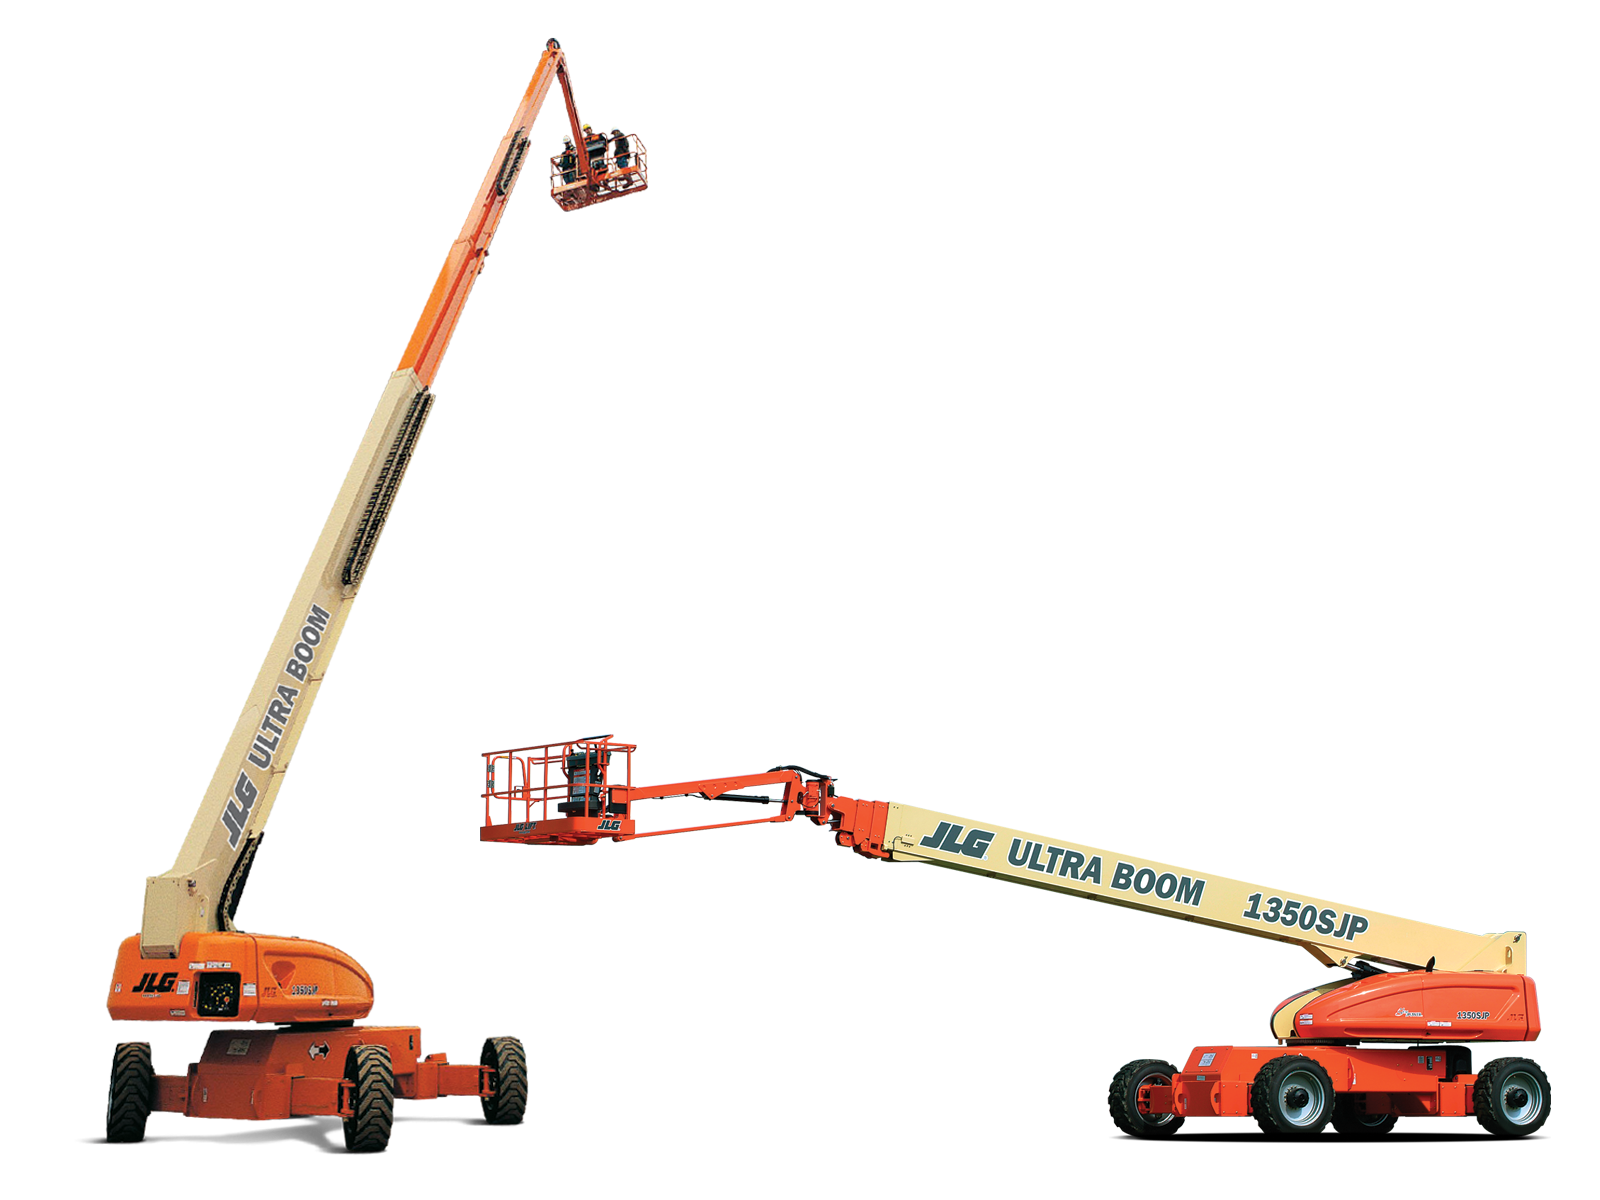 1350SJP Telescopic Boom Lift | JLG on